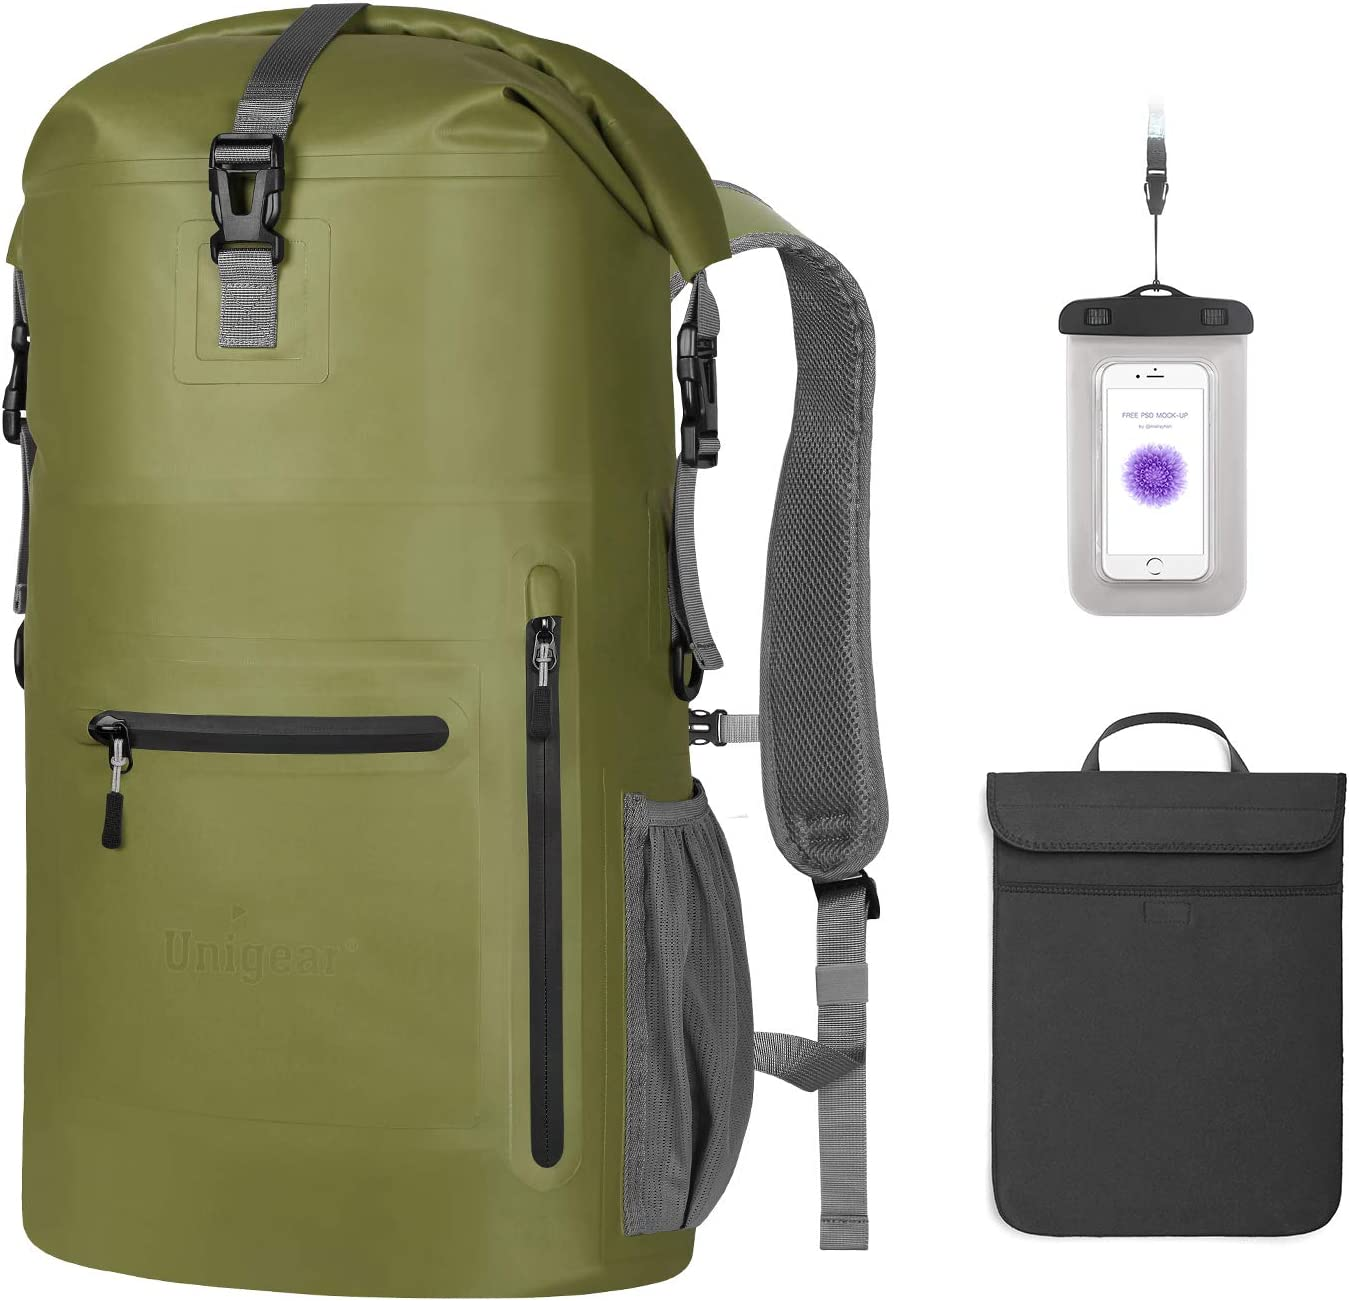 Unigear Waterproof Backpack Floating Dry Bag 35L with a Detachable Laptop Bag and 4 Zipper Pockets Ventilated Padded Back and Straps for Comfort